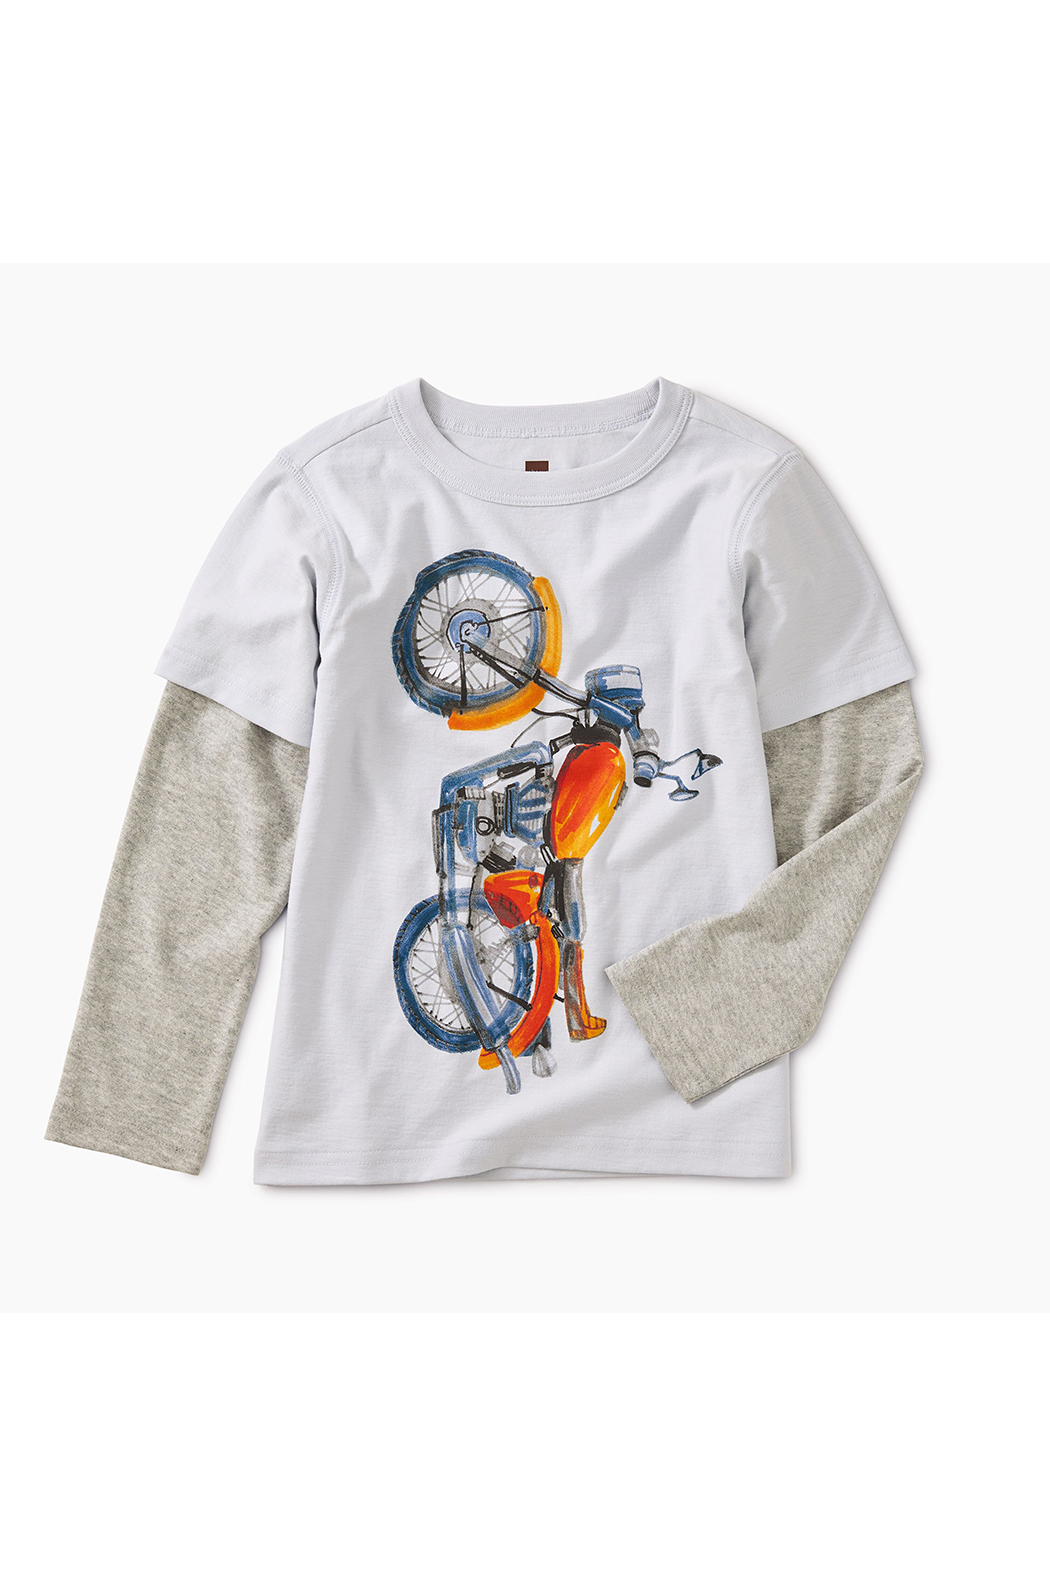 Tea Collection Vertical Moto Graphic Layered Tee - Main Image